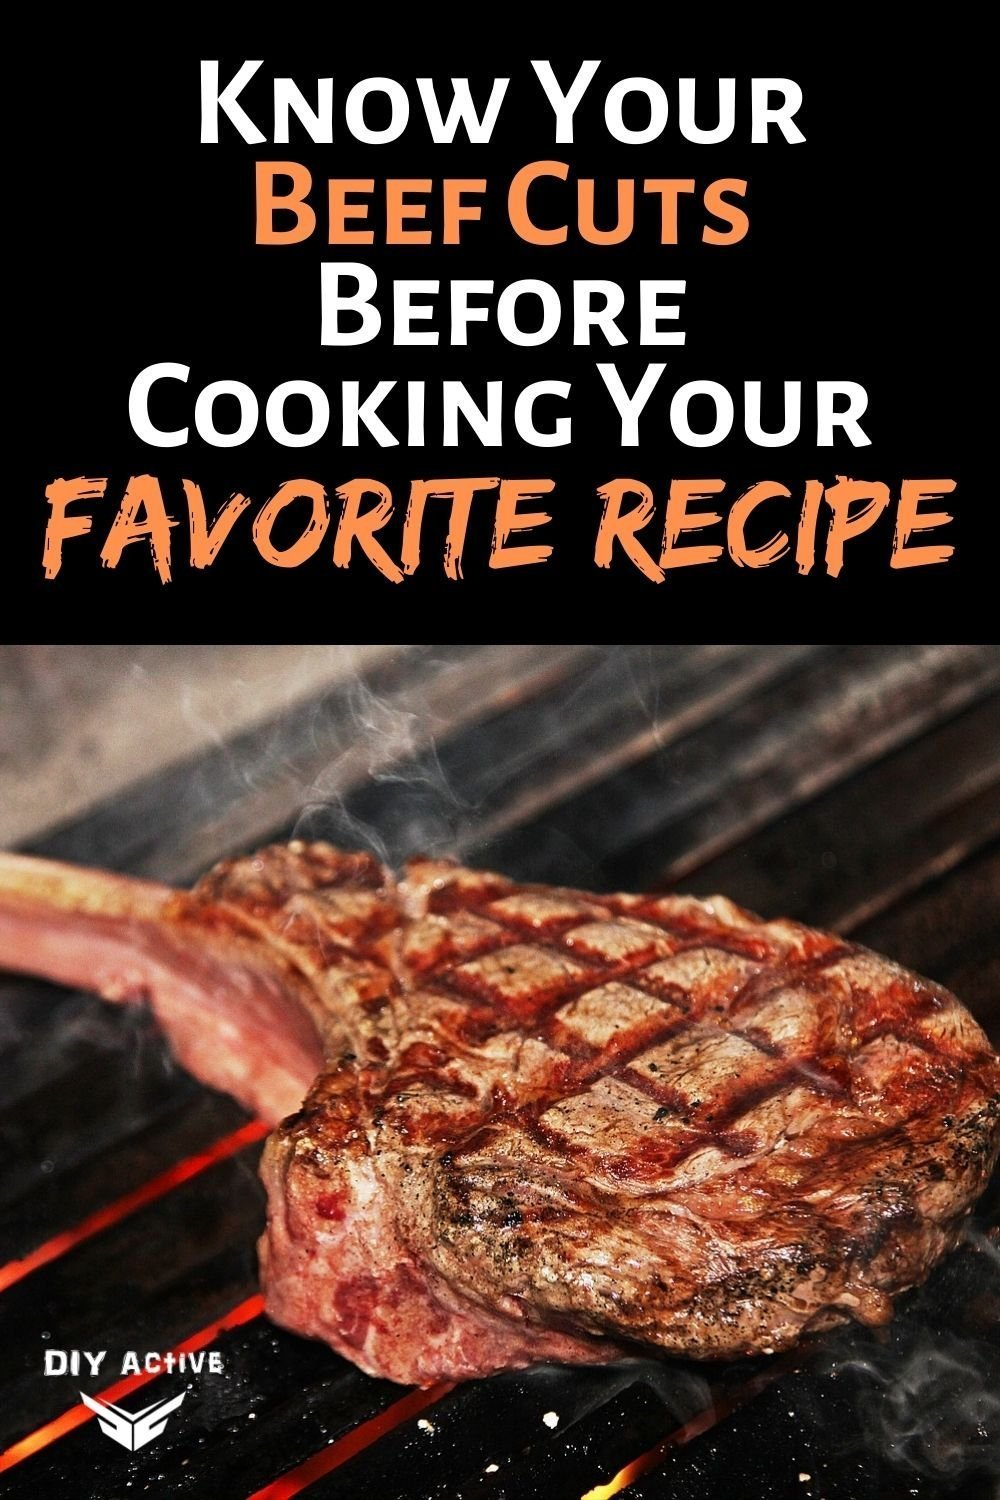 Know Your Beef Cuts Before Cooking Your Favorite Recipes